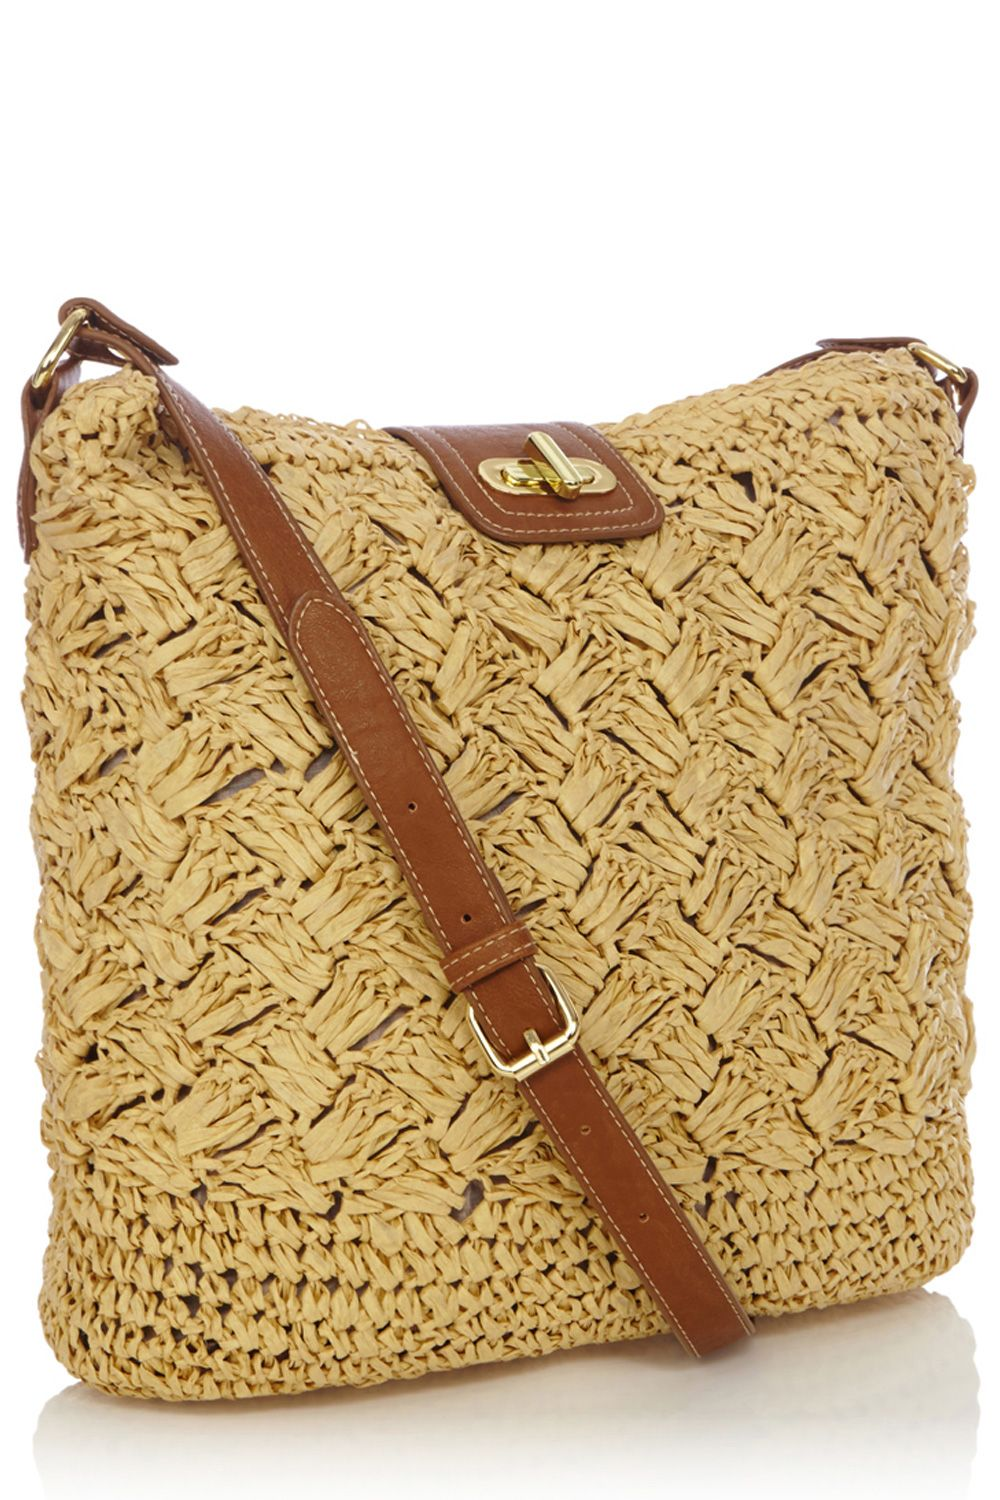 Caroline crochet cross body